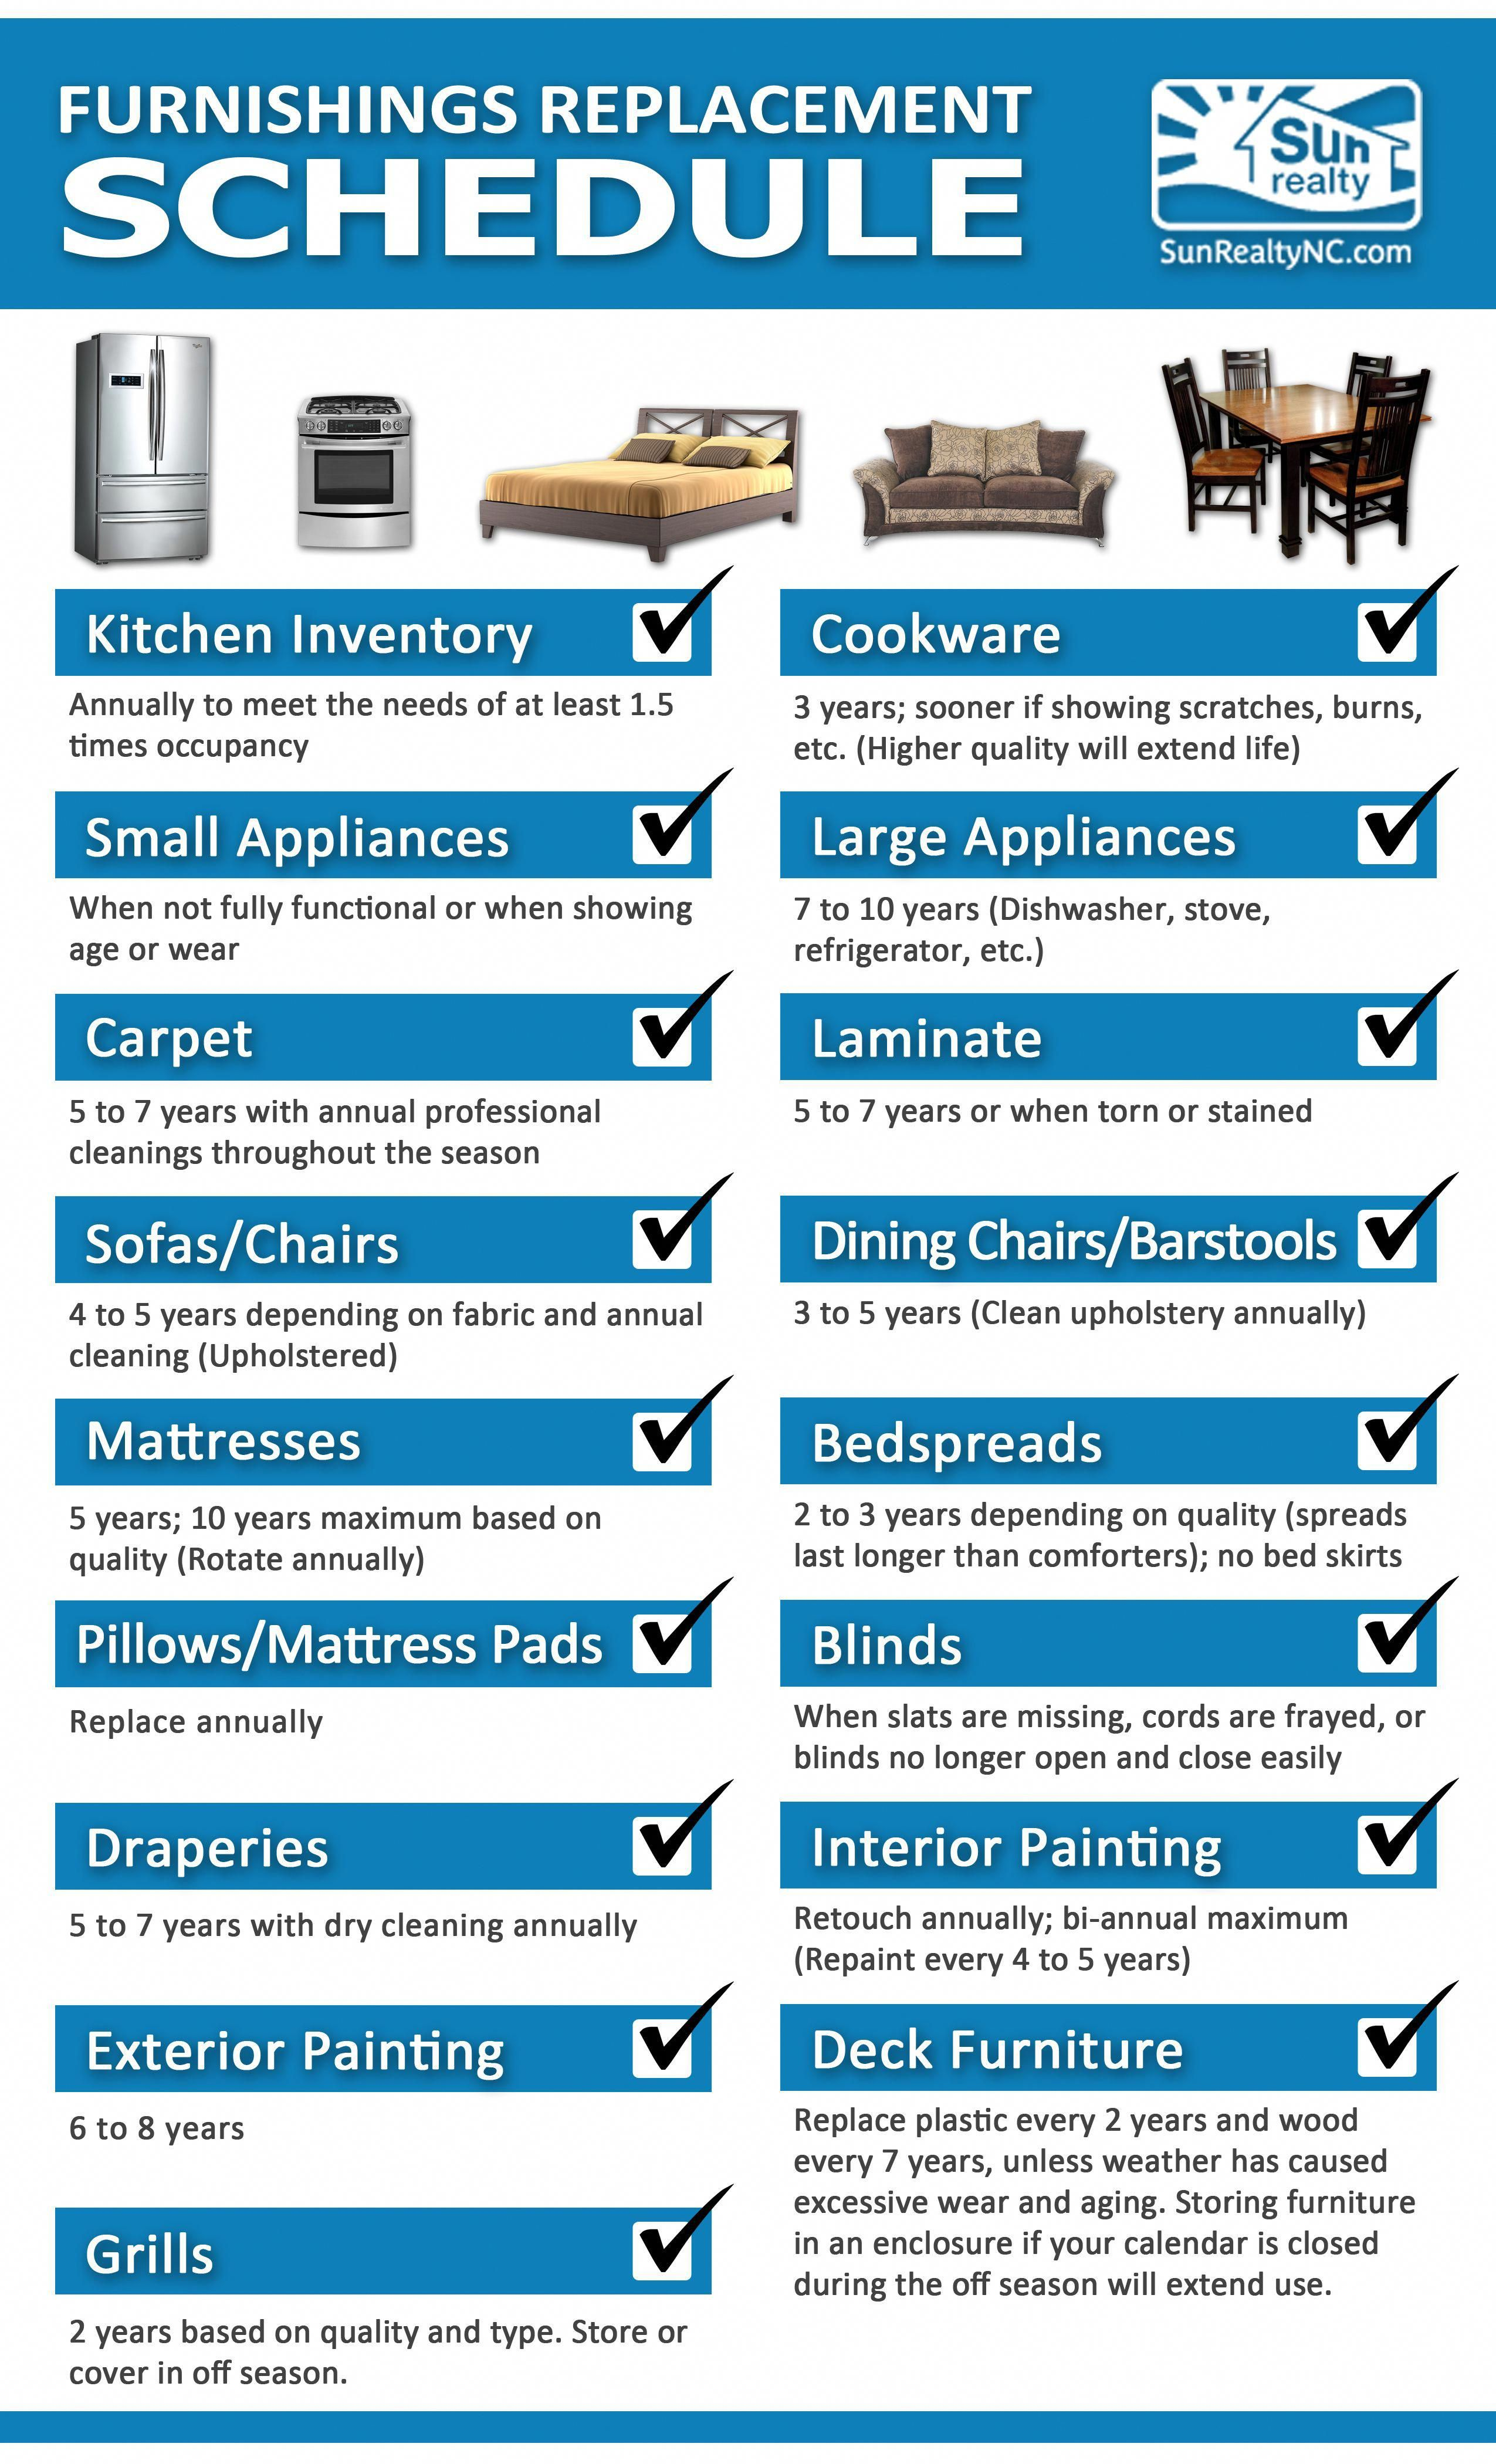 Home appliances extended warranty